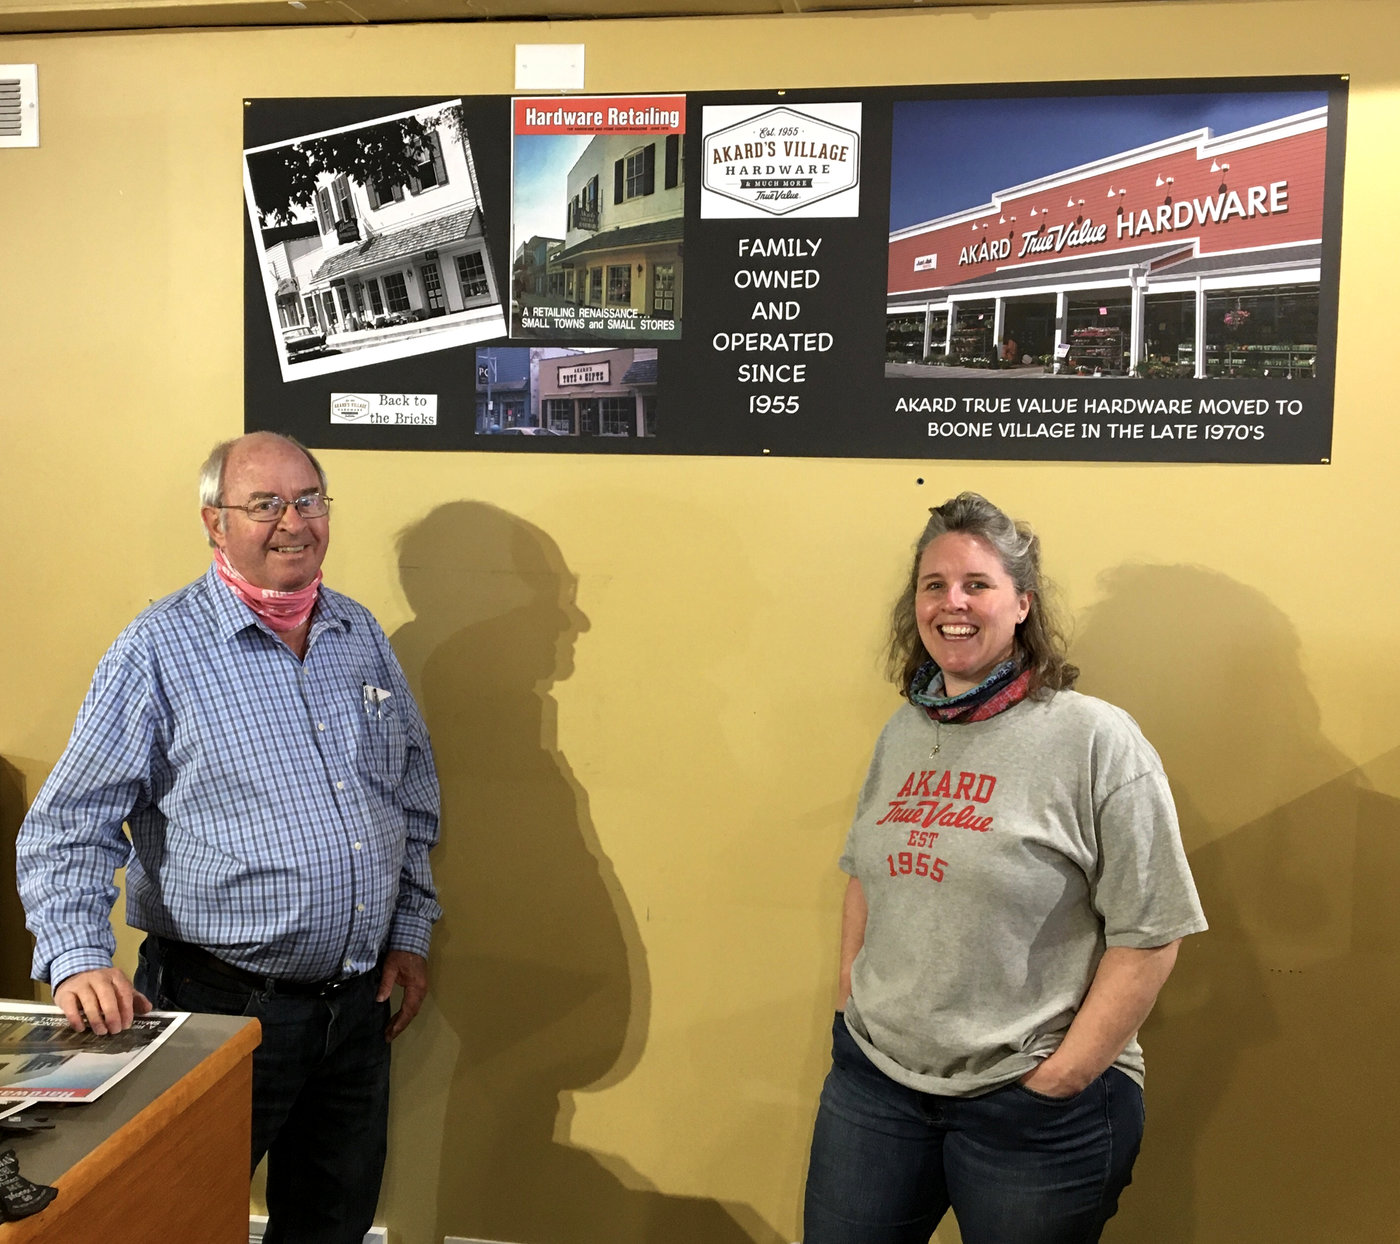 Steve and Leigh Ann Akard are celebrating the 65th anniversary of Akard True Value Hardware by opening a pop-up shop in their former location on Zionsville's Brick Street.